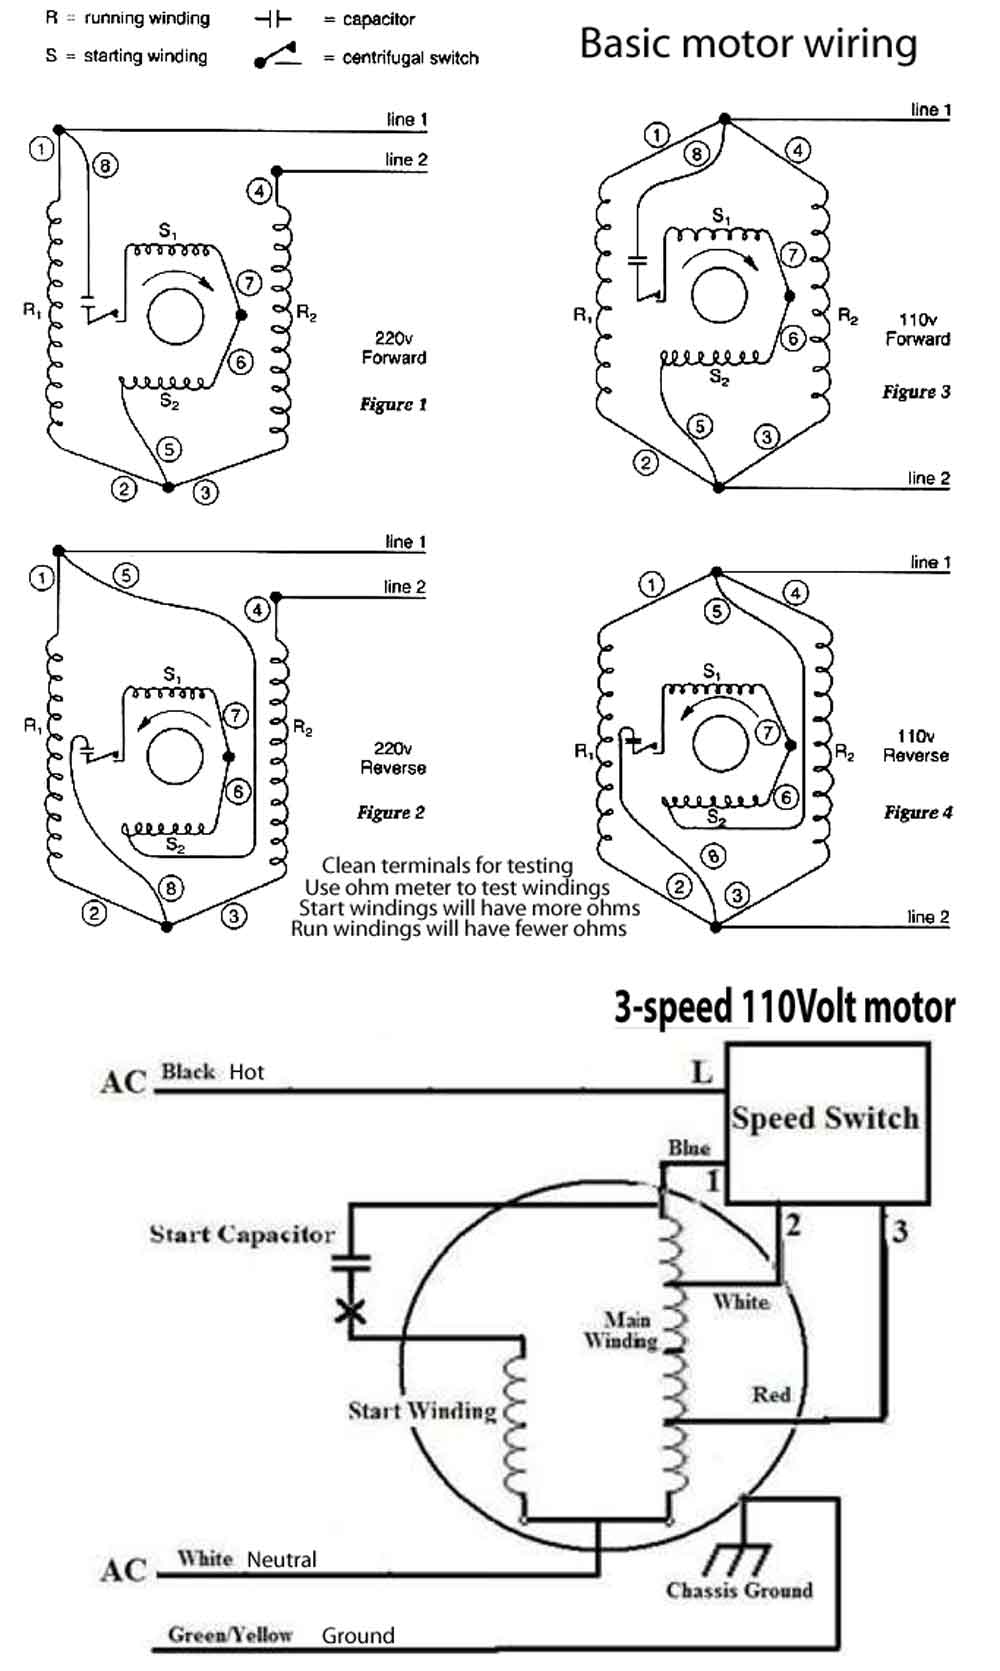 Motor wiring 500 color code for residential wire how to match wire size and 110 Power Cord Diagram at edmiracle.co